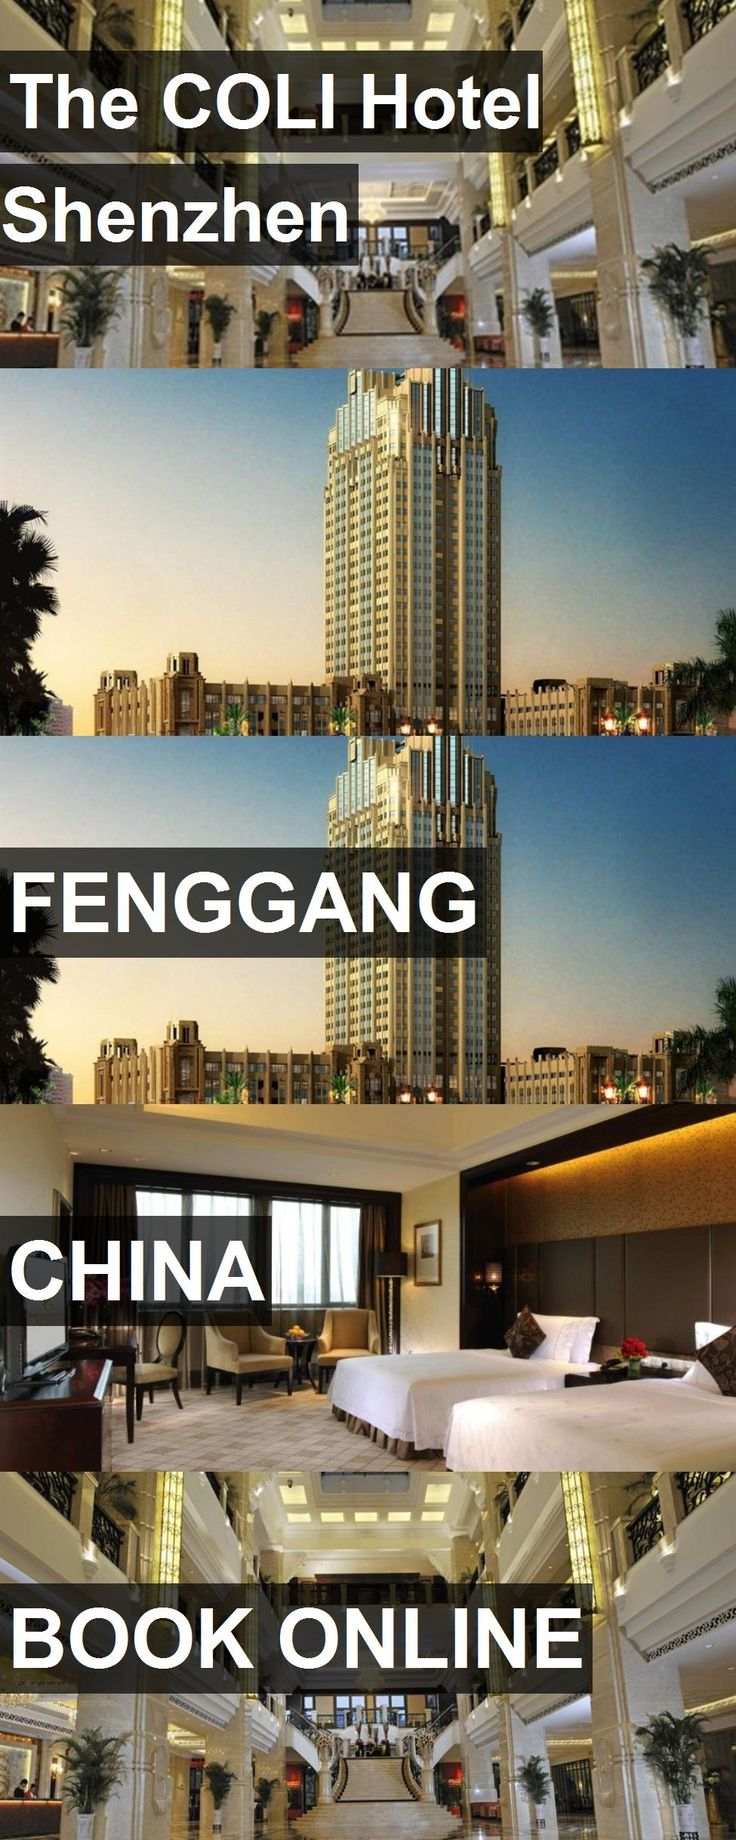 The COLI Hotel Shenzhen in Fenggang, China. For more information, photos, reviews and best prices please follow the link. #China #Fenggang #travel #vacation #hotel